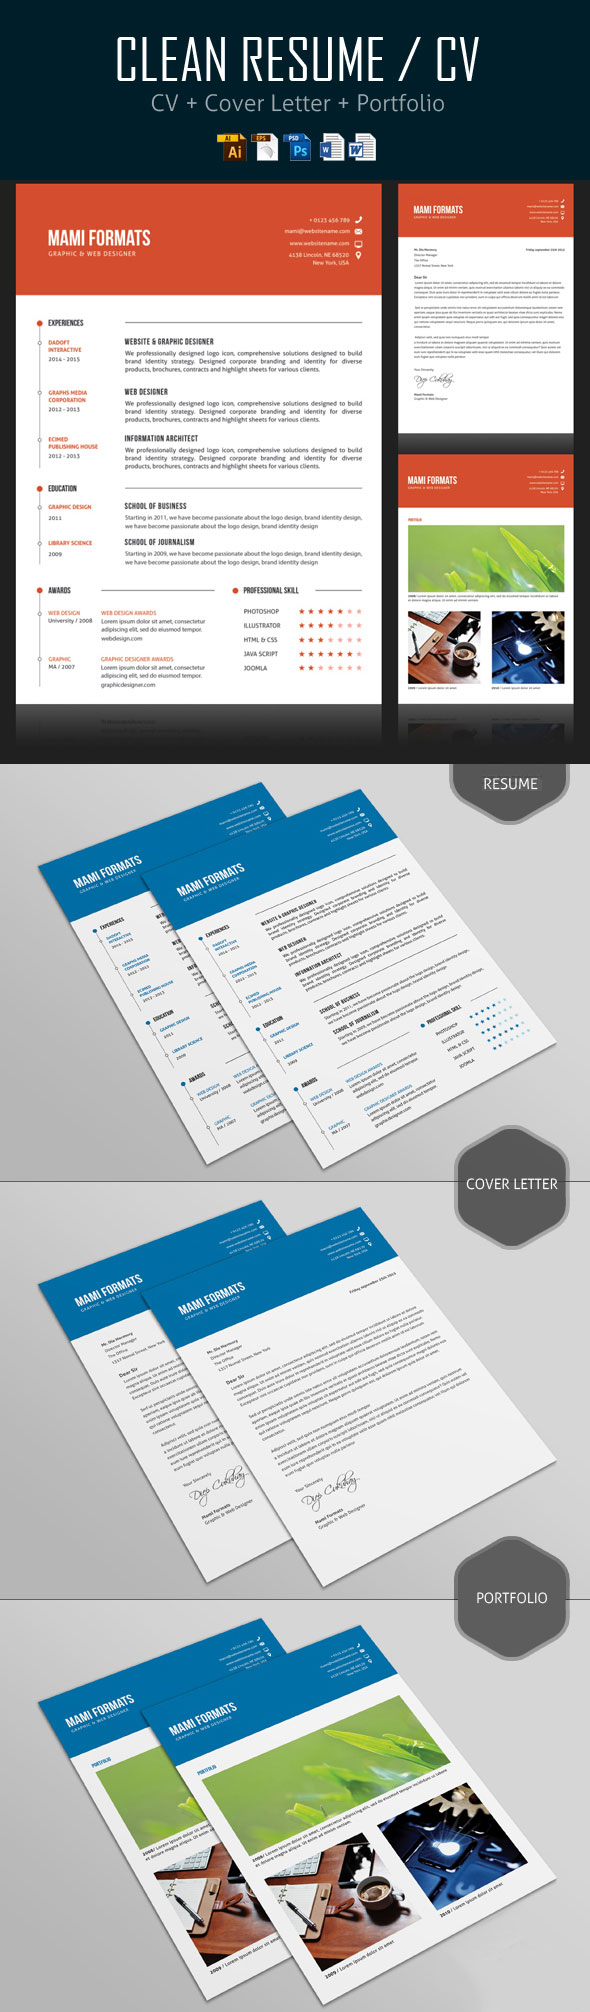 Creative Resume Templates To Land A New Job In Style